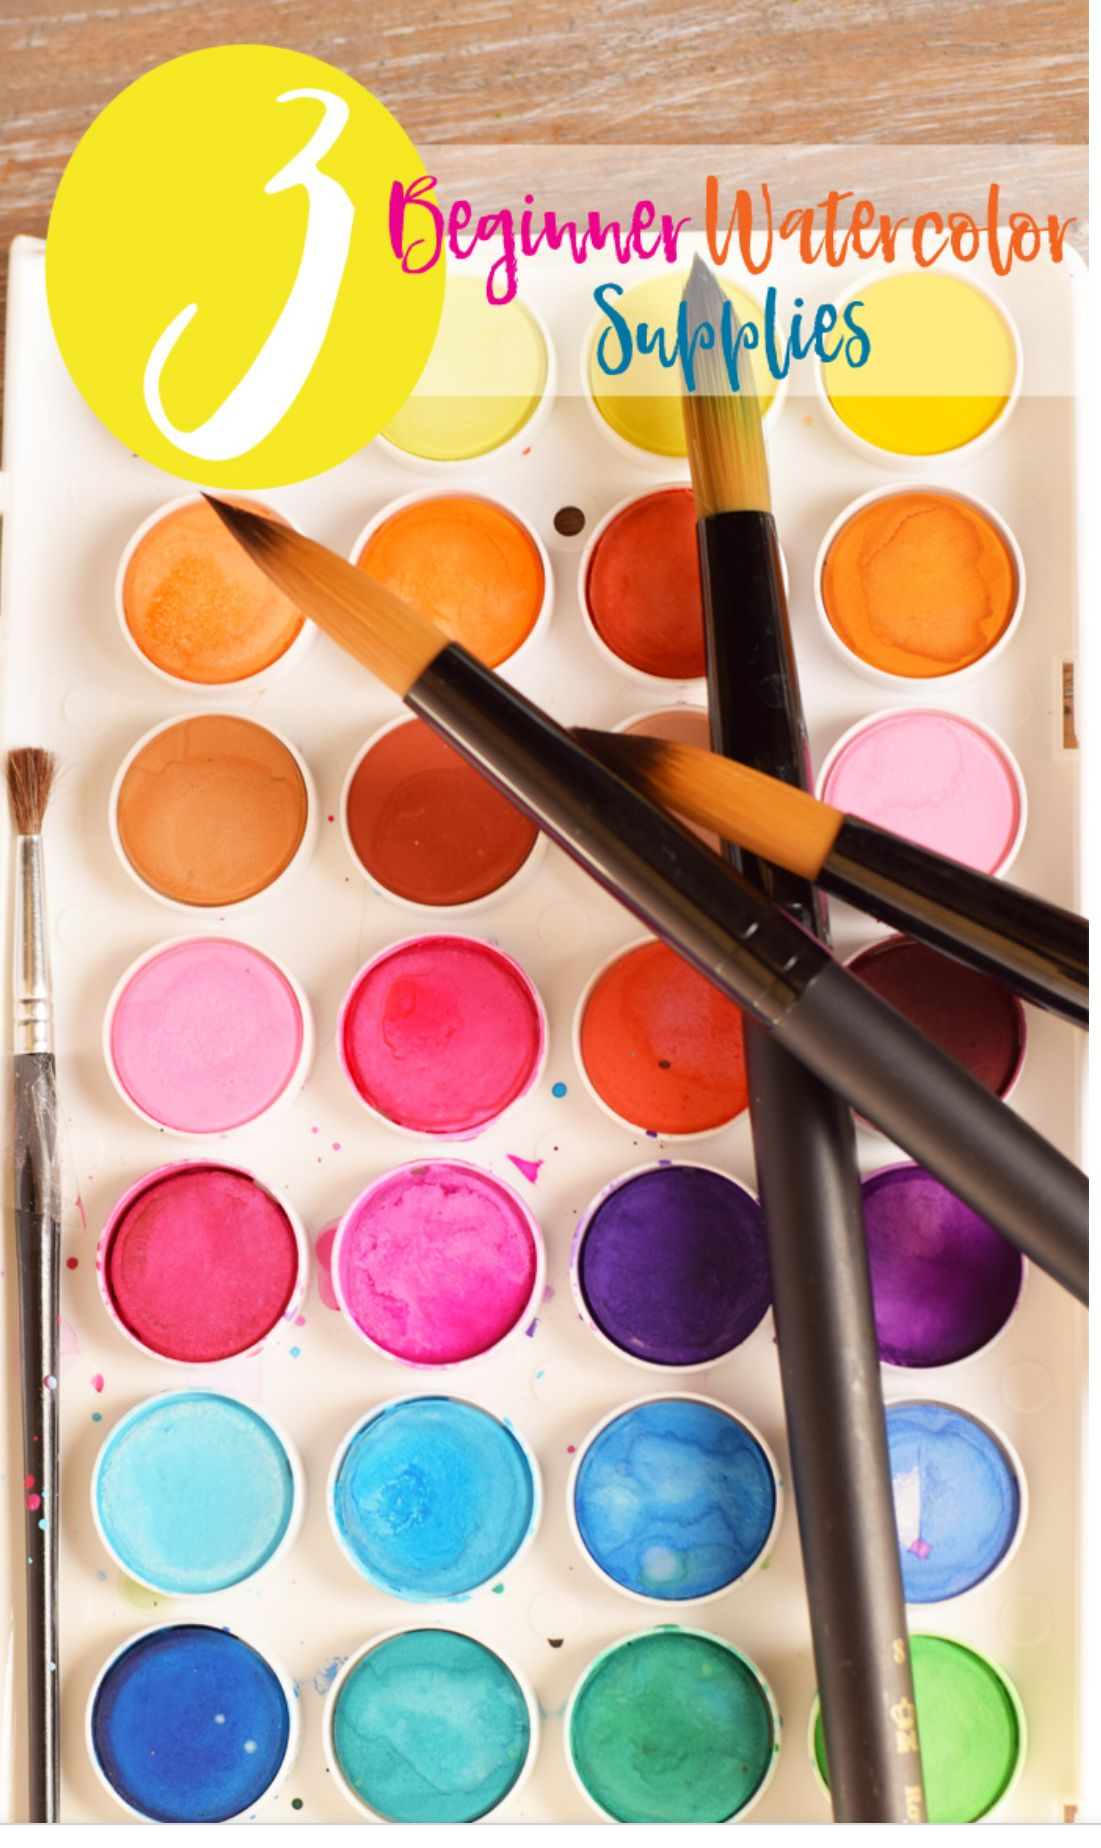 3 Basic Watercolor Supplies For Beginners That I Would Need To